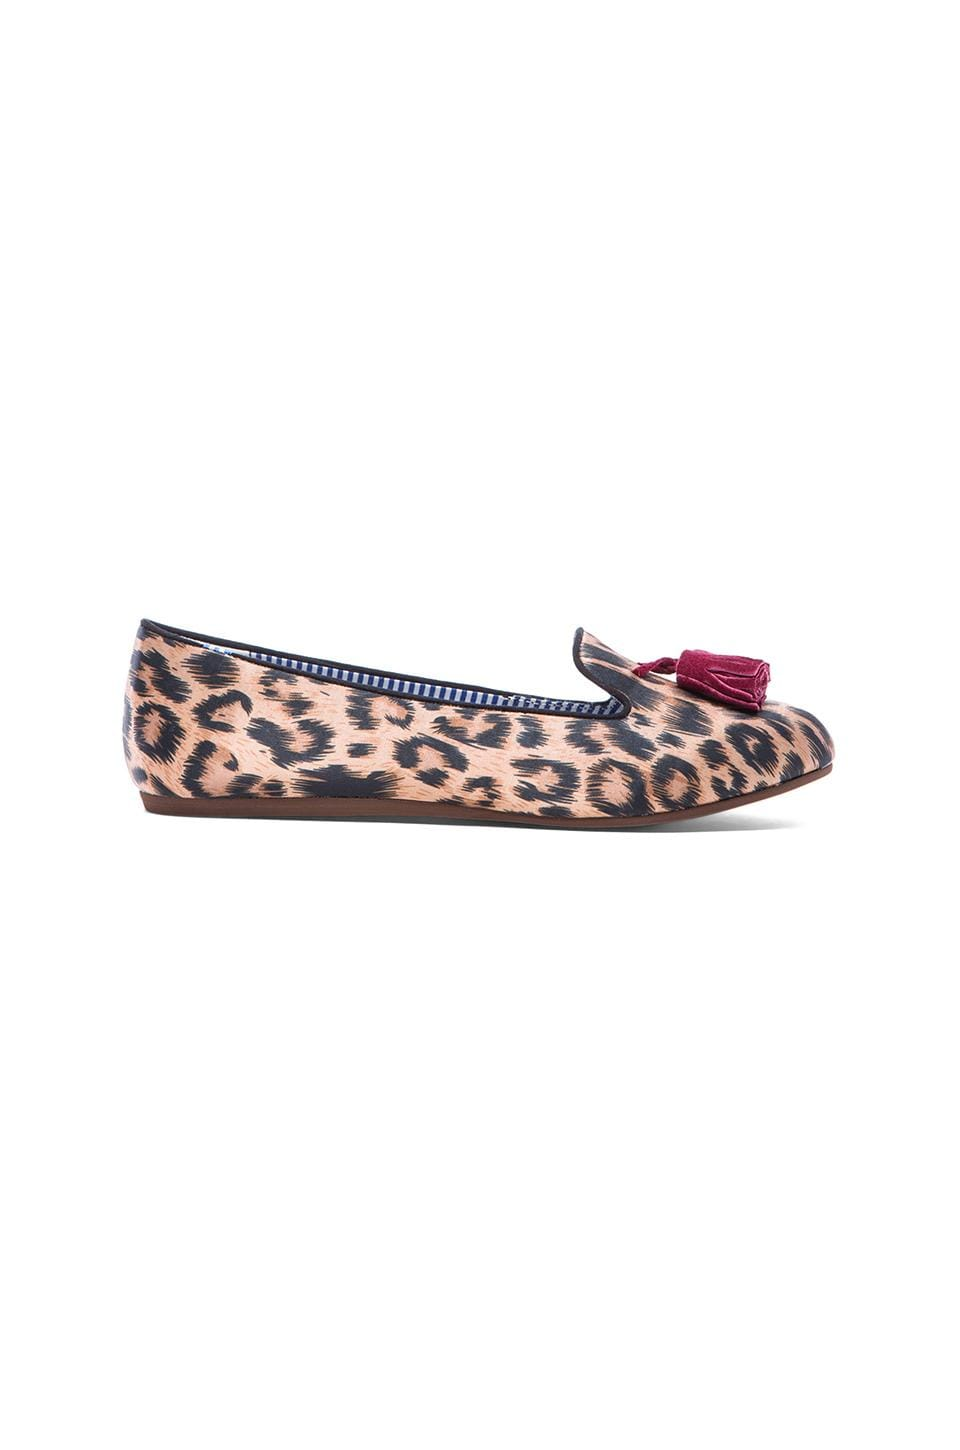 Charles Philip Shanghai Sheila Loafer in Classic Leopard